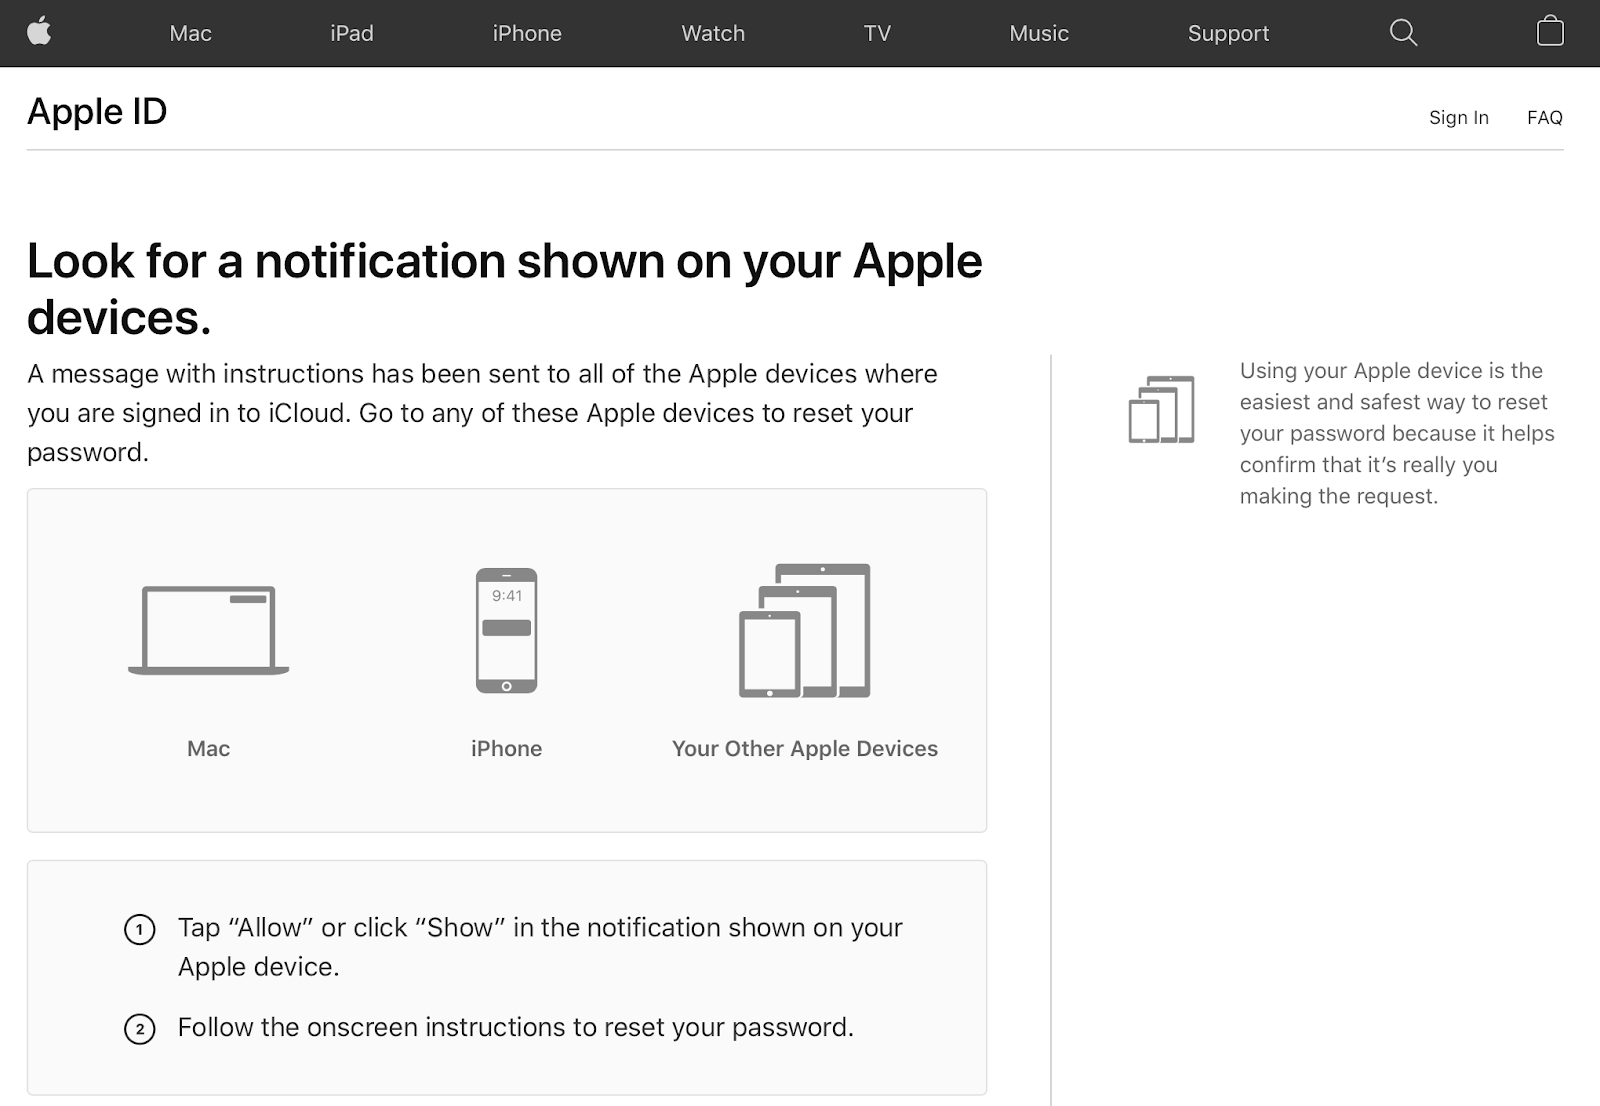 Follow the on-screen instructions shown on your Apple device